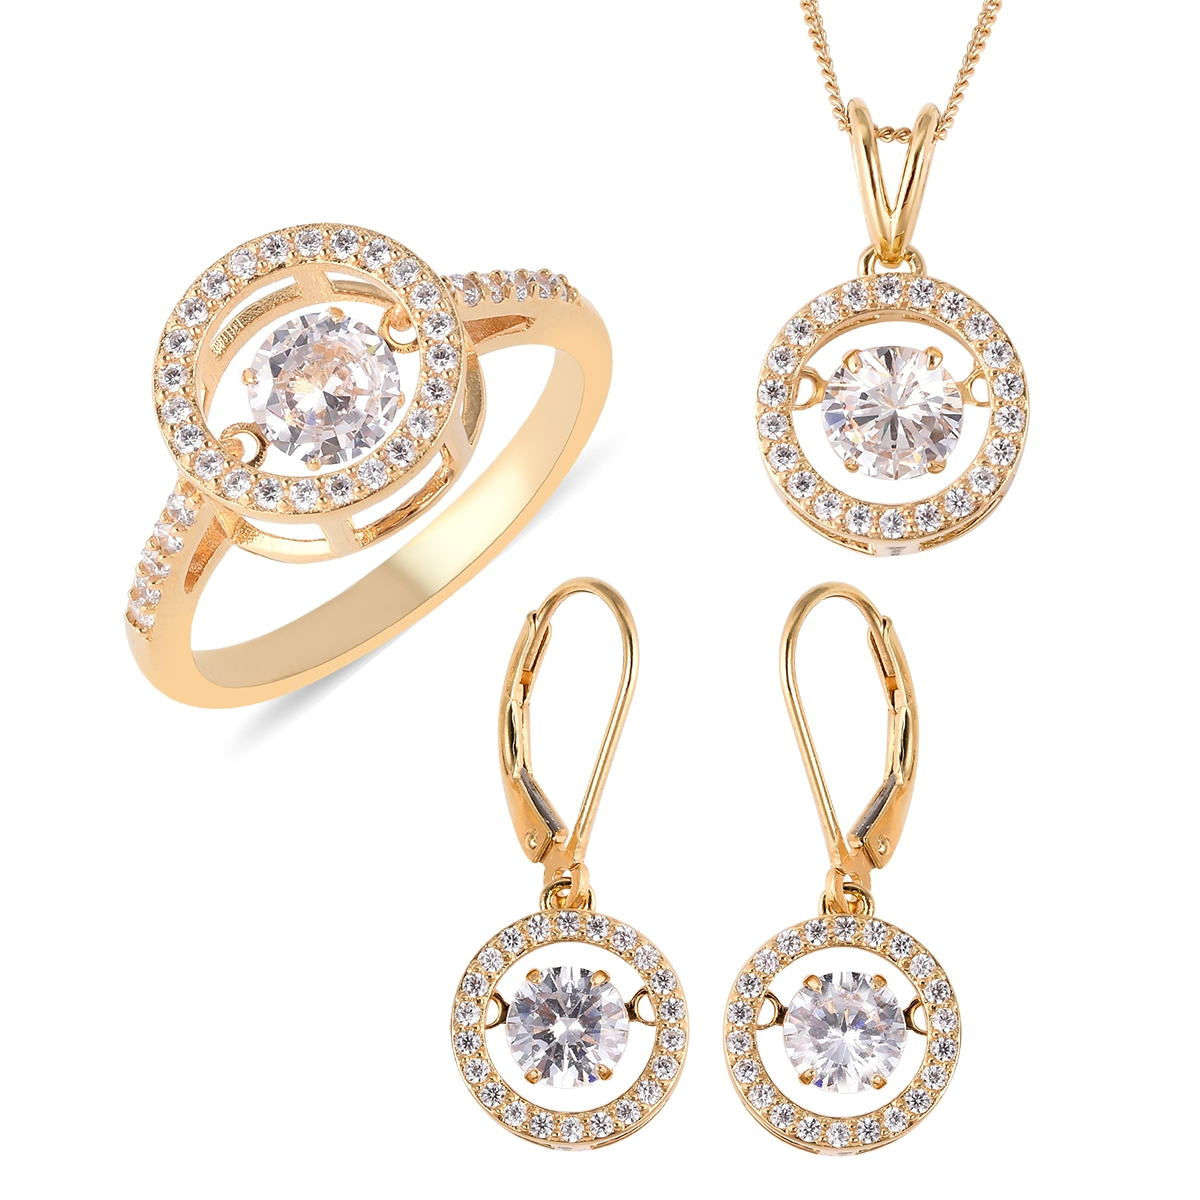 Lustro Stella Dancing Cz Halo Set Earrings, Ring (Size 8) And Pendant Necklace (18 In) In Vermeil Yg Over Sterling Silver (Avg. 11.25 G) (View 21 of 25)